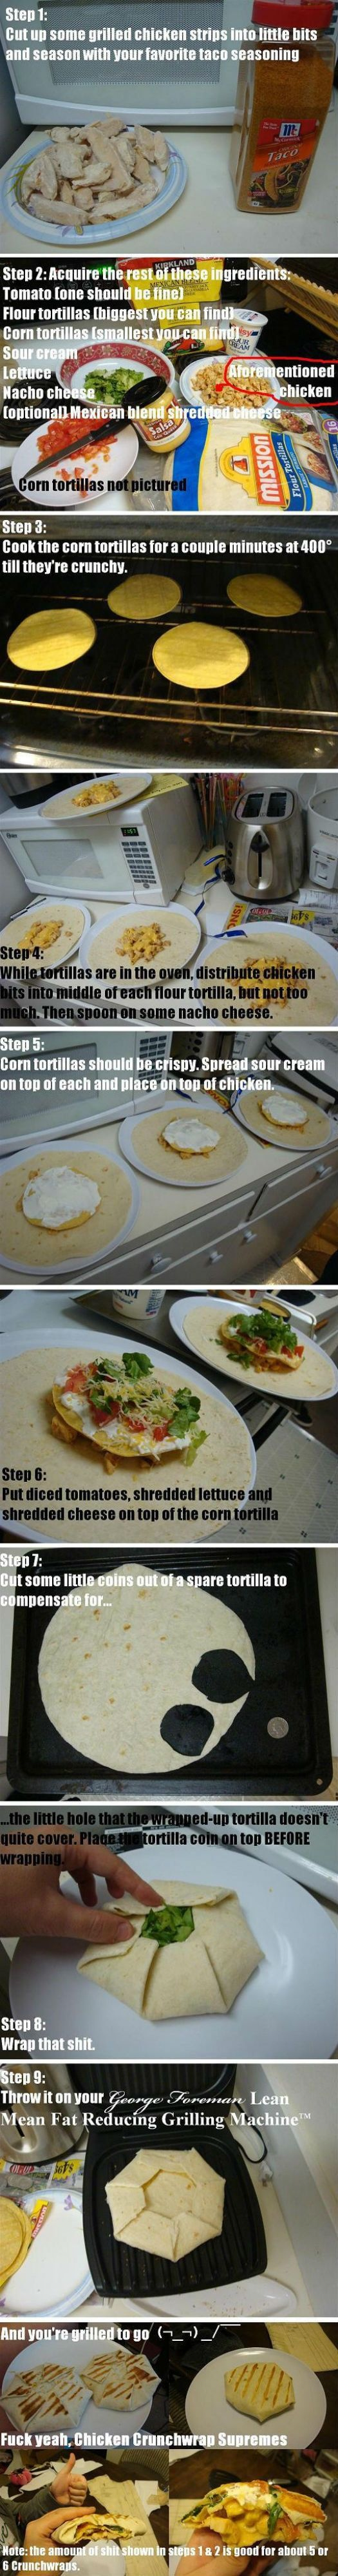 Make your Own Crunch Wrap Supreme